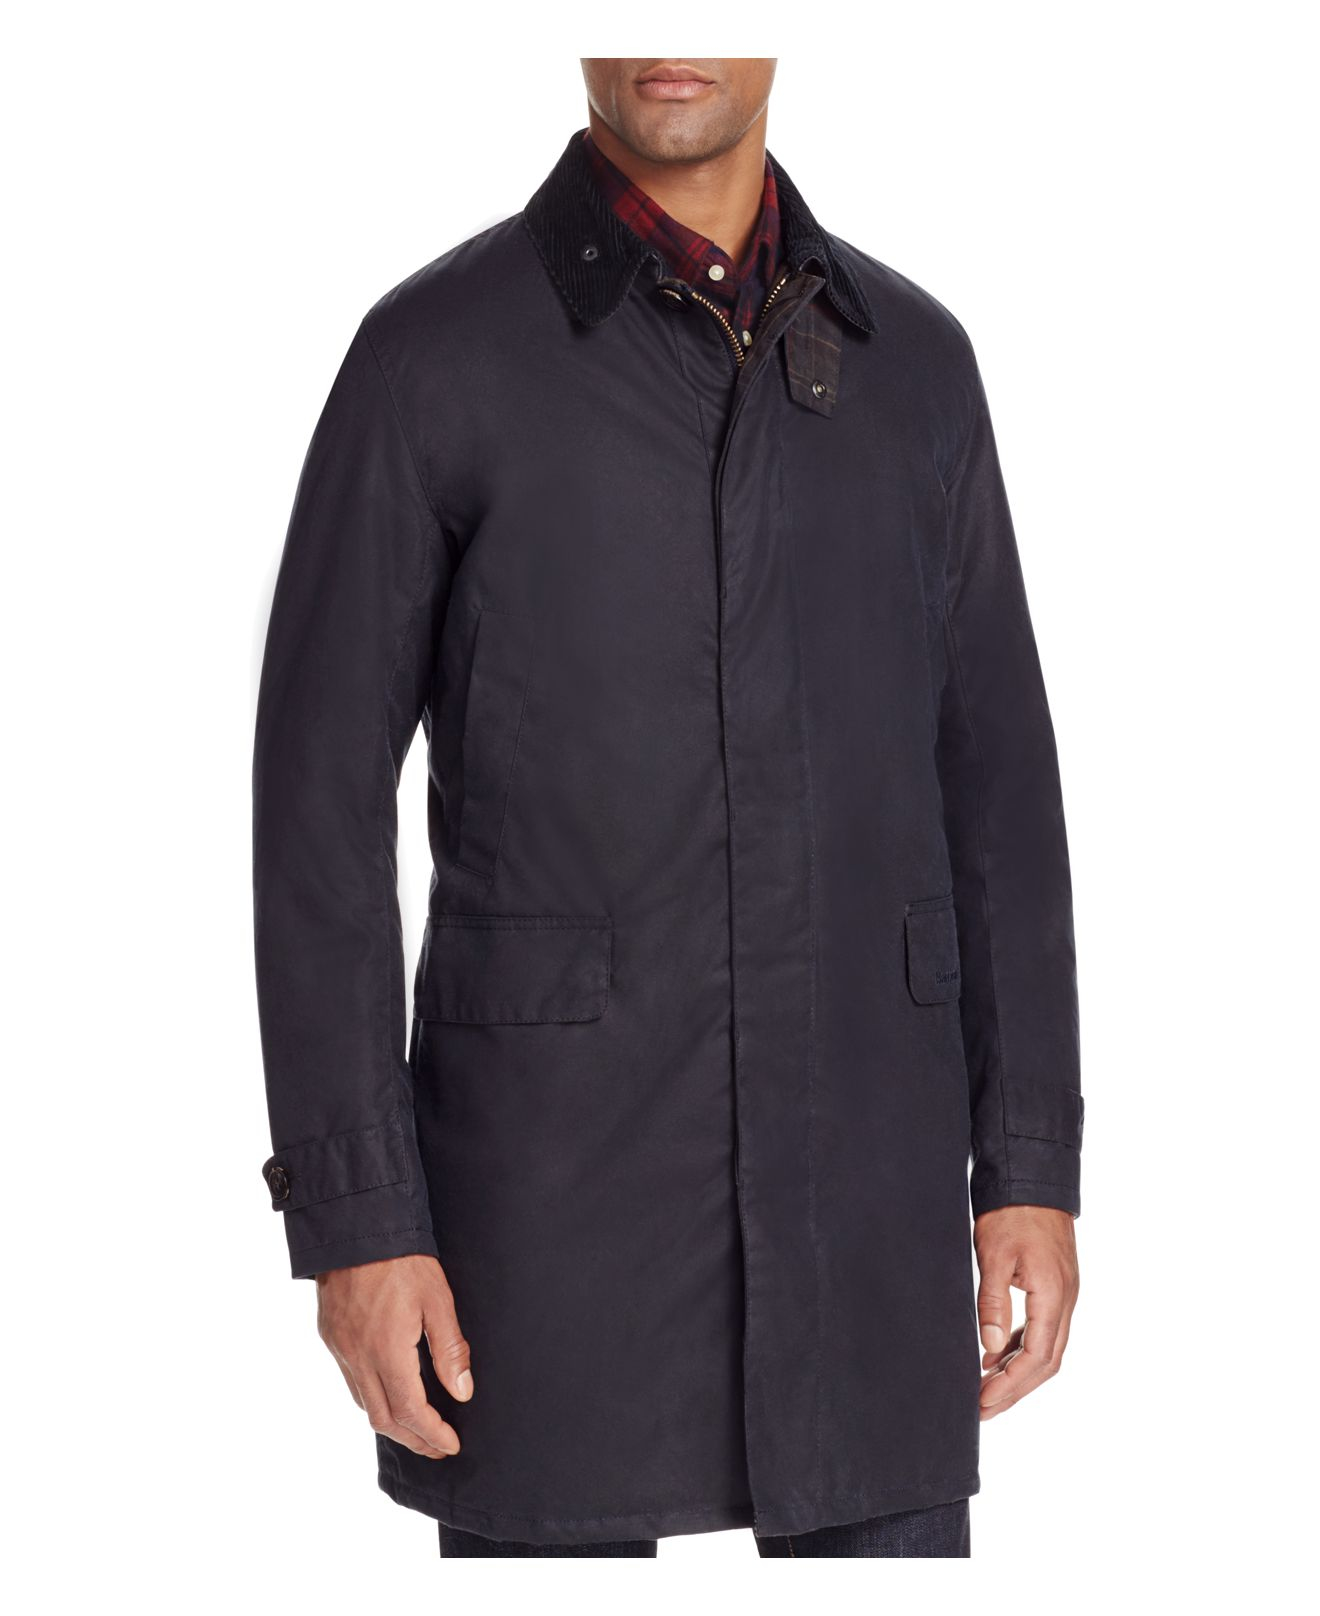 Barbour Nairn Three Quarter Length Waxed Jacket In Blue